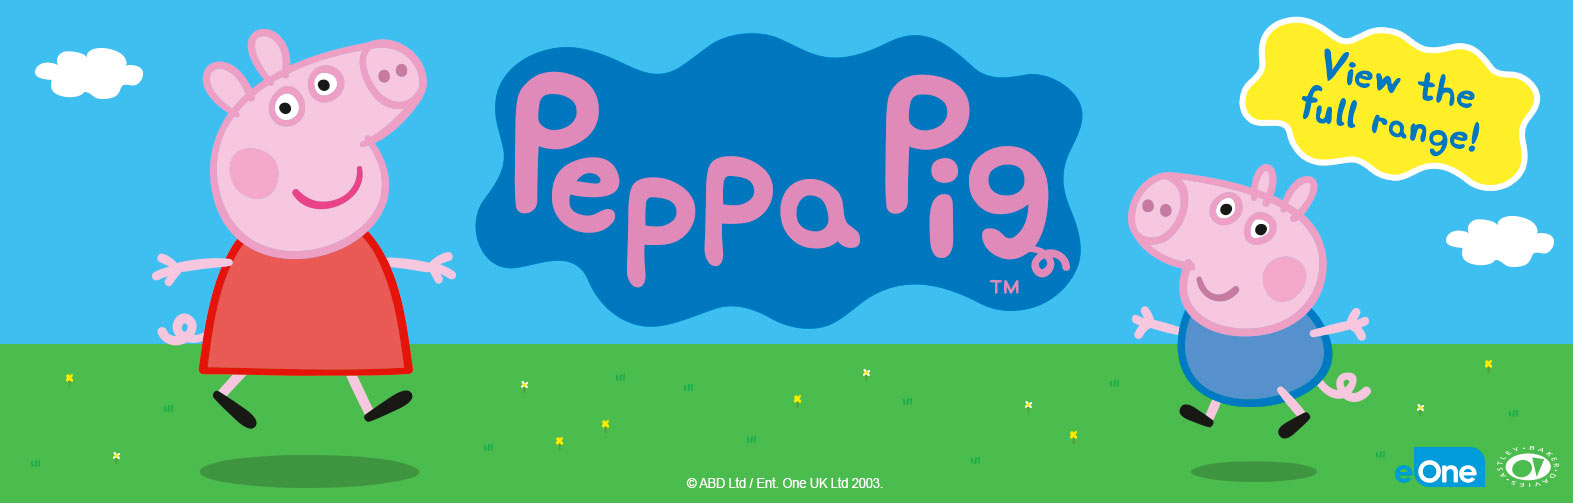 Welcome to the Peppa Pig Shop at Smyths Toys Superstores!